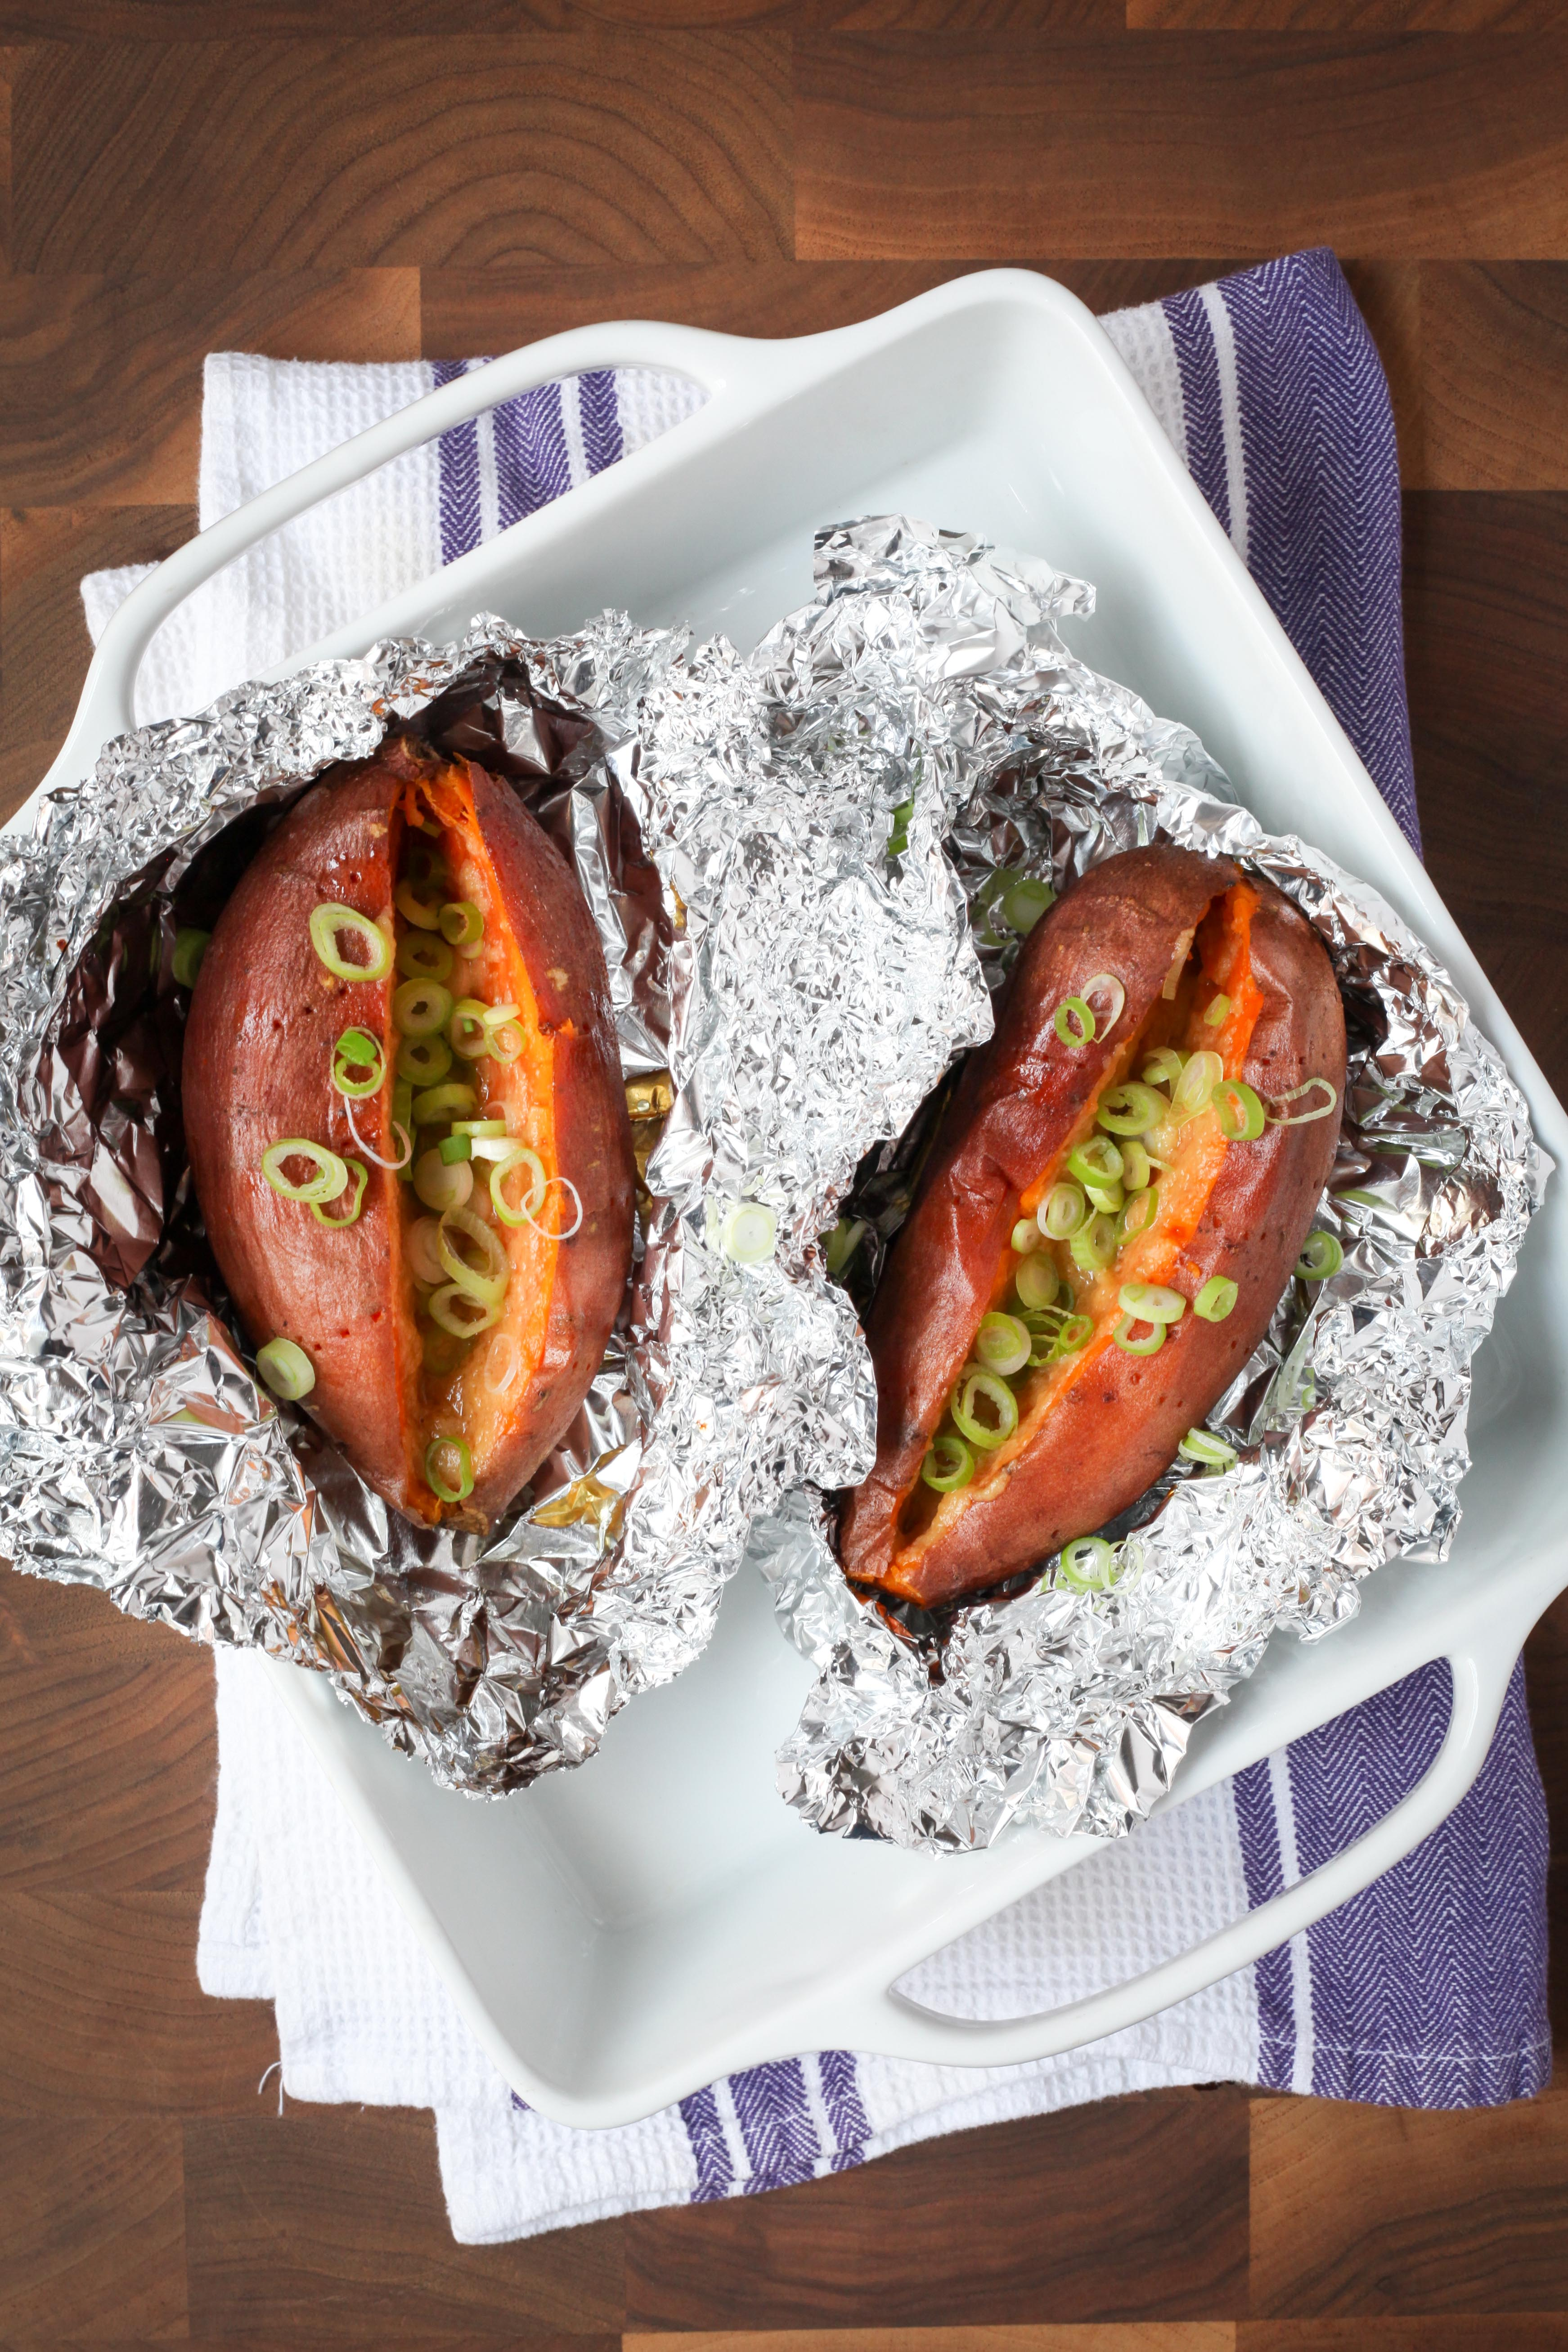 Baked Sweet Potatoes With Miso Butter and Scallions | amodestfeast.com | @amodestfeast